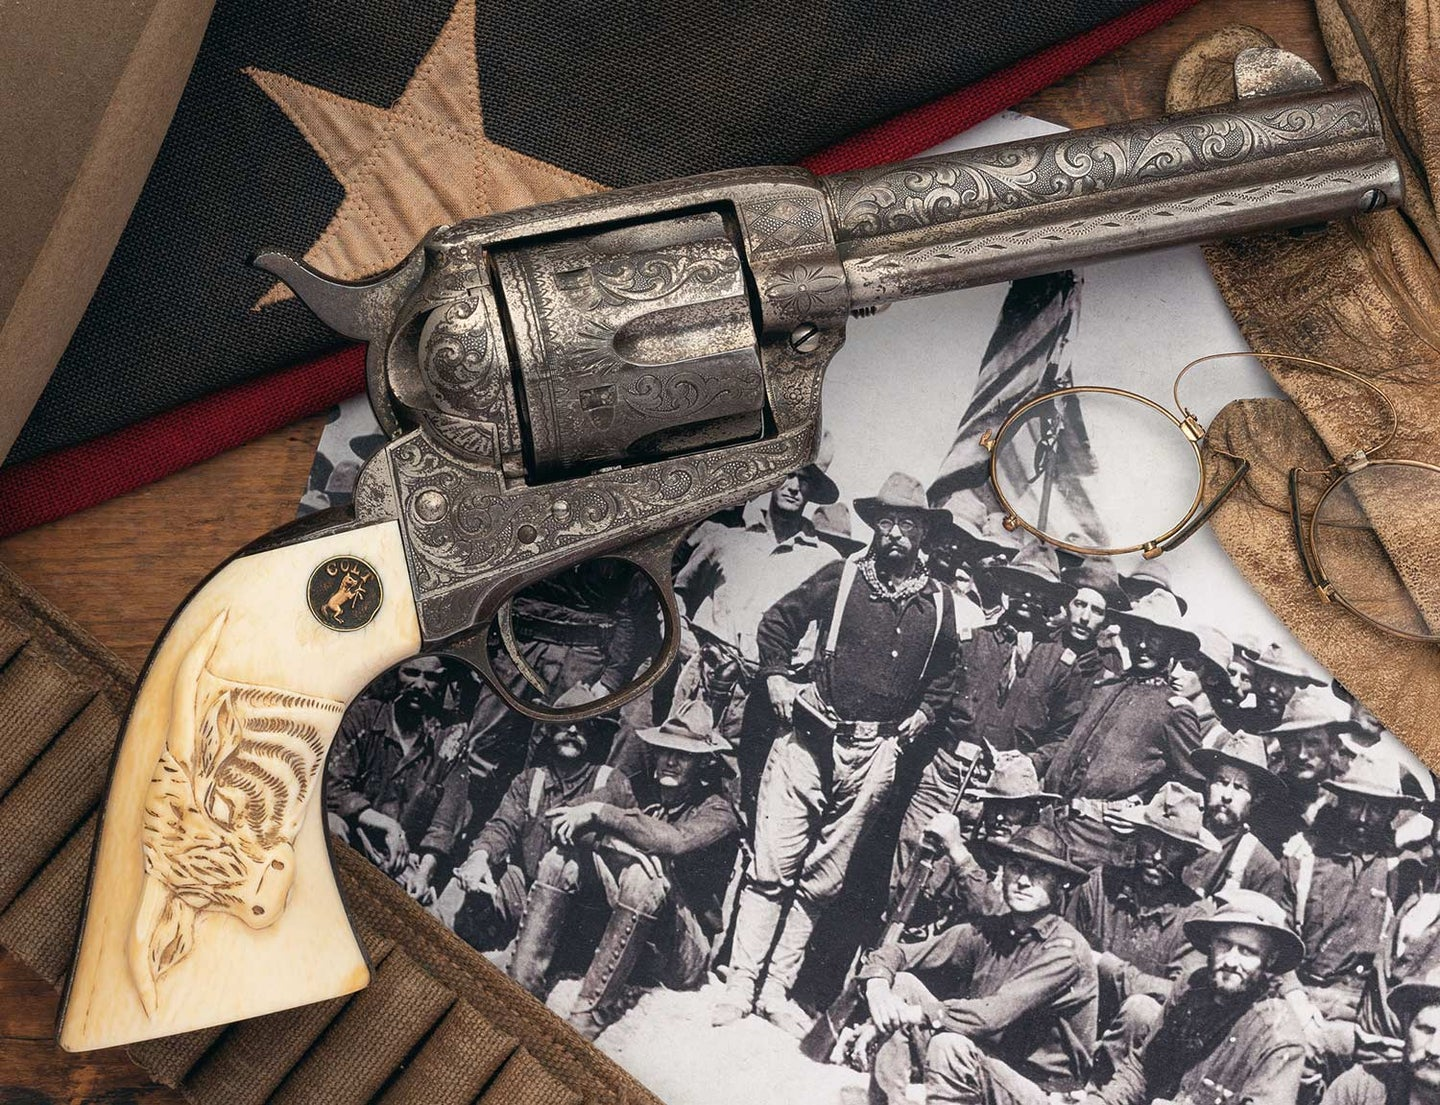 A Colt single action army revolver on an antique photo and flag.